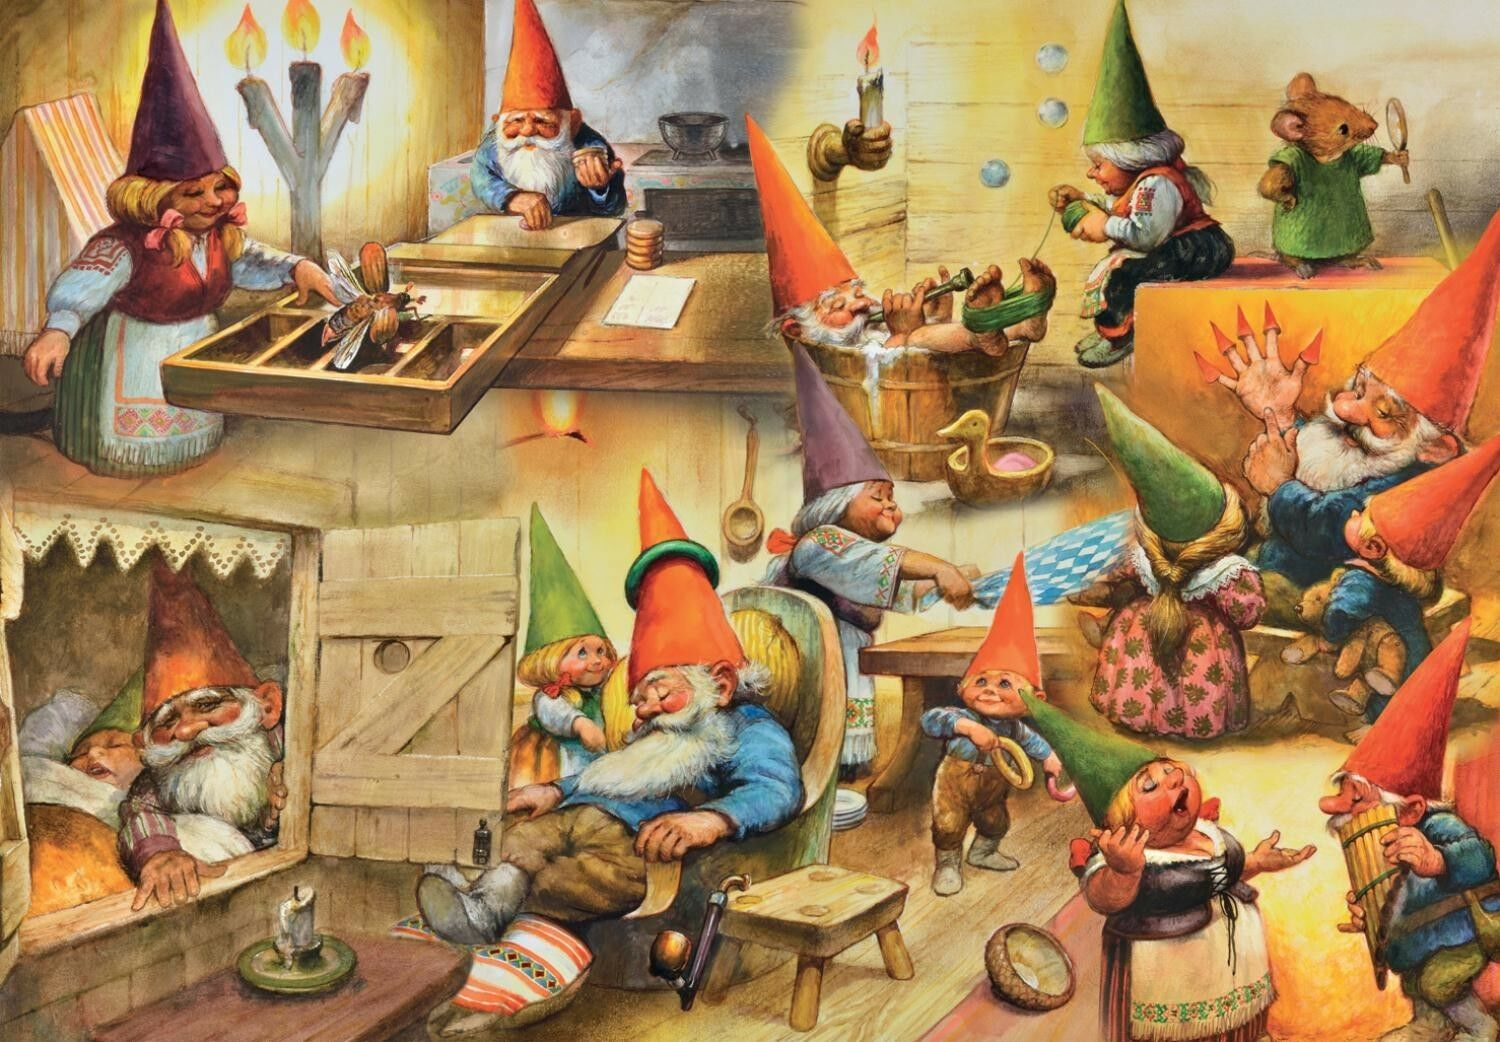 David the Gnome Gnome Gnome Rien Poortvliet Jigsaw Puzzle 1000pc NEW At Home with the Gnomes 4857d2